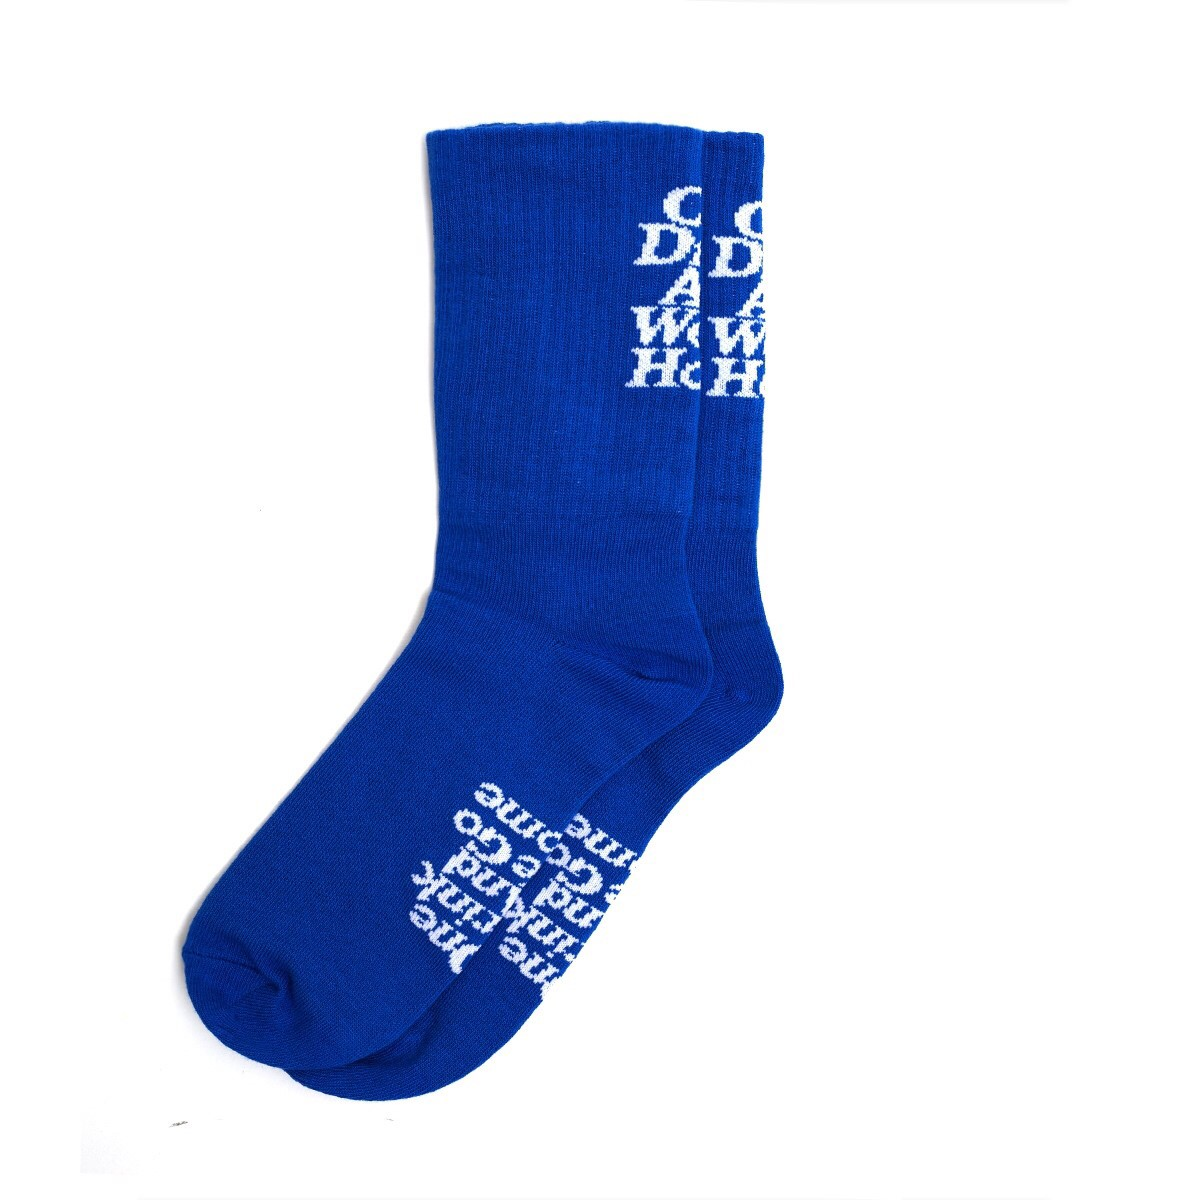 ONE DRINK AND WE GO HOME I CAN'T SMILE SOCKS PACK BLUE